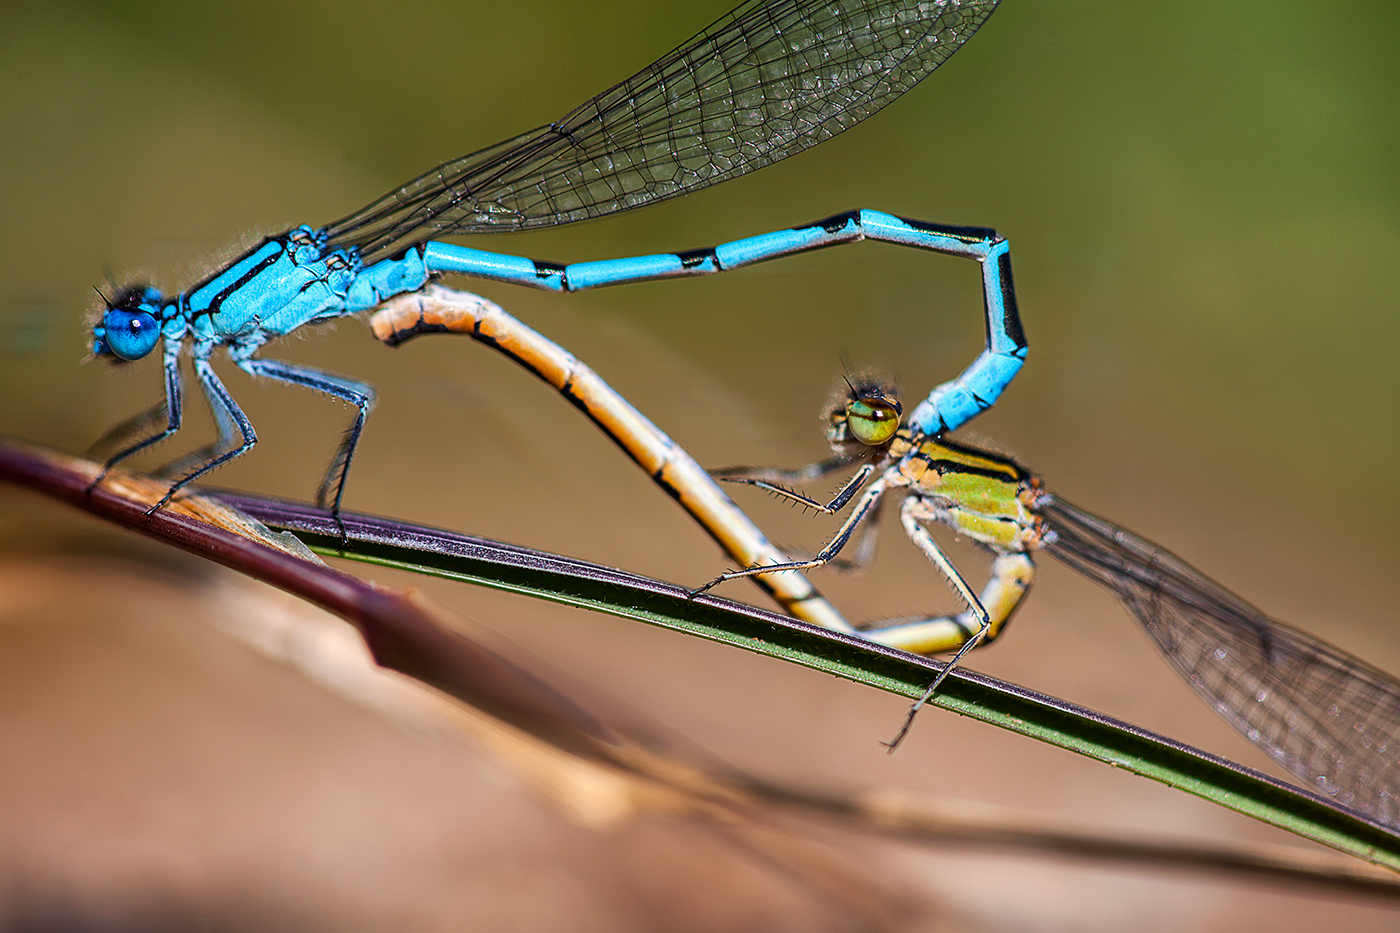 03-les-libellules-agrion-bleu-accouplement-art-lindo-photography-hd